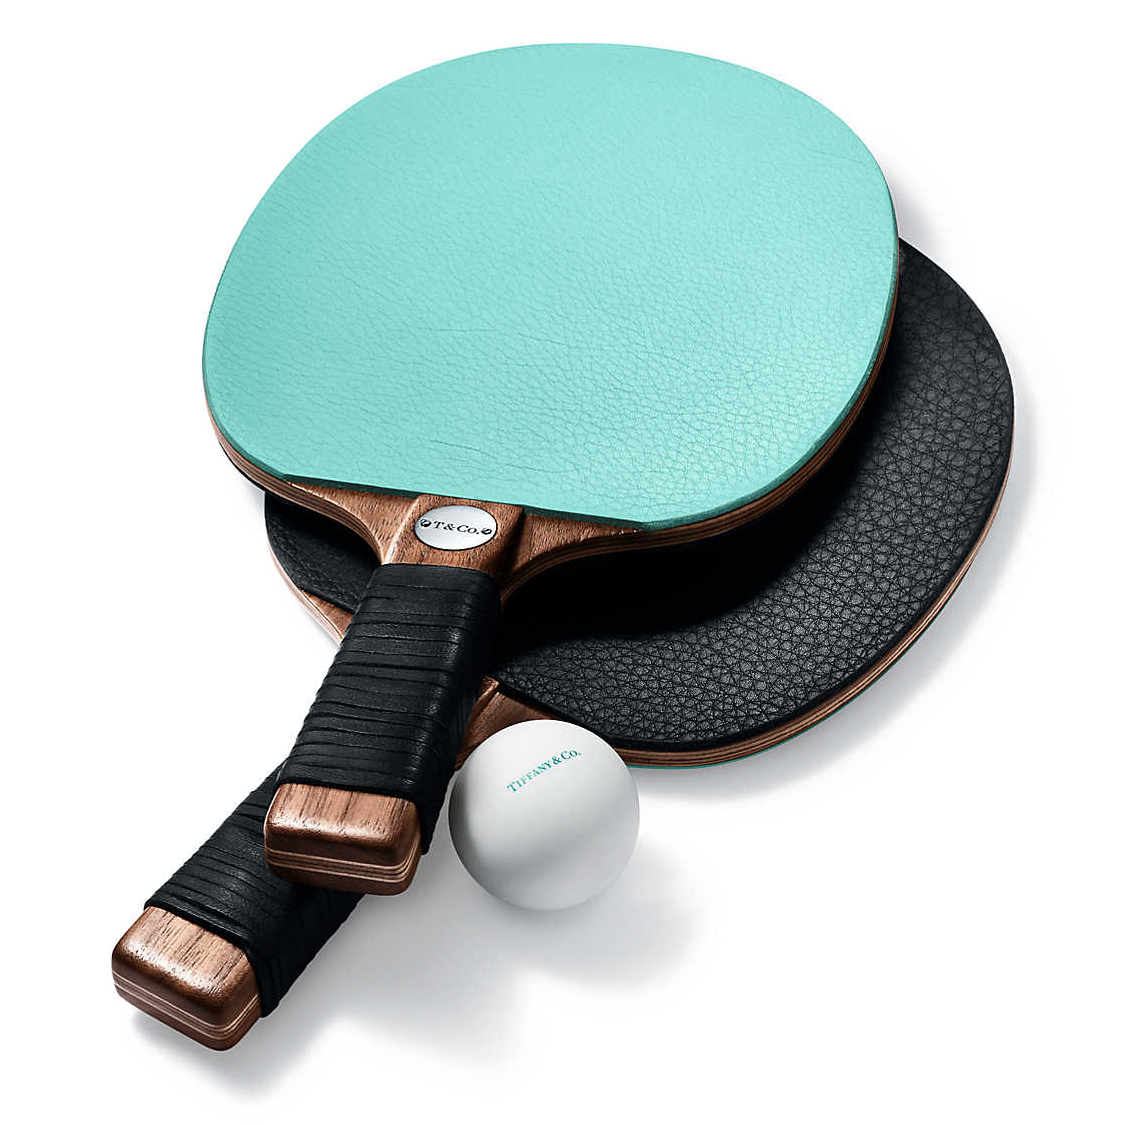 Designers Trolled Fashion - Tiffany Ping Pong Paddle